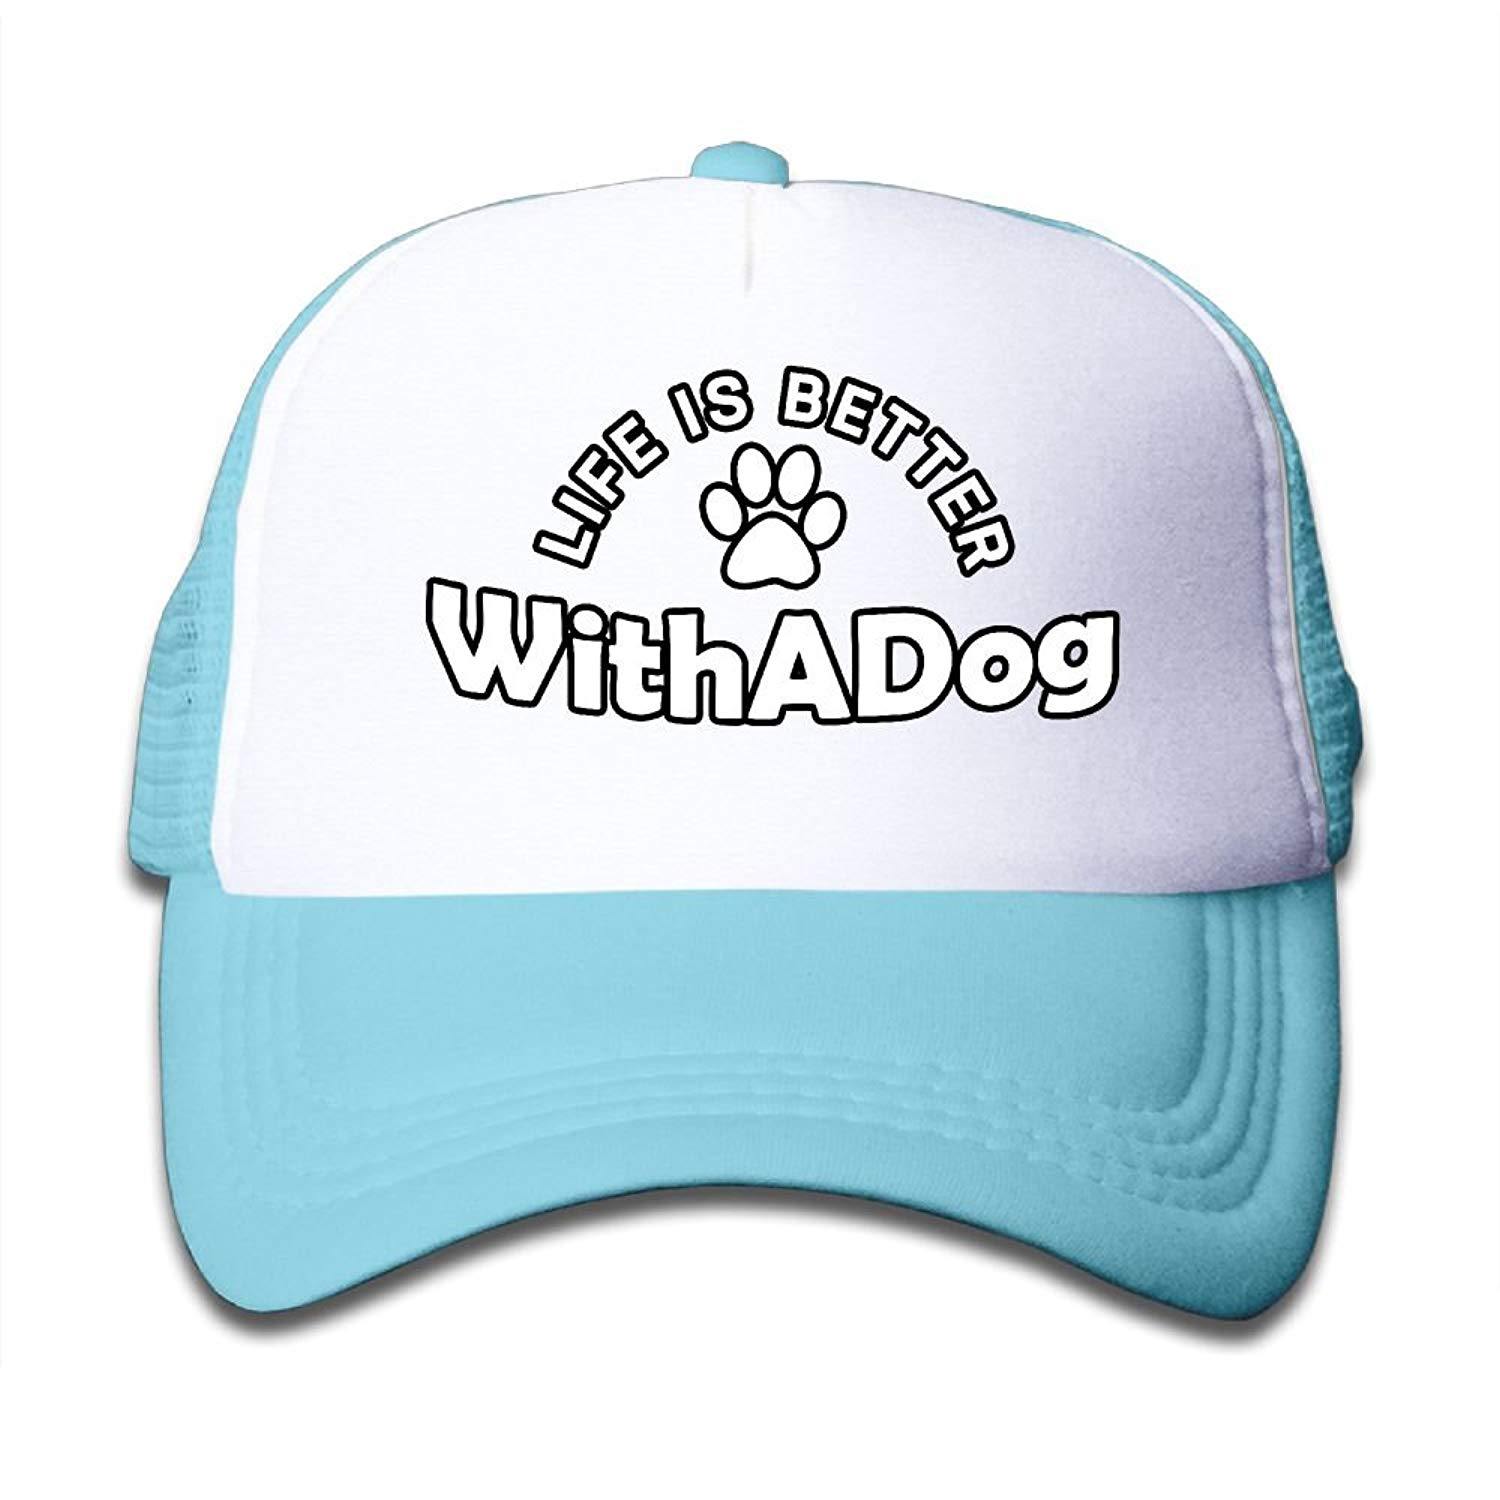 fe61d9168f7 Get Quotations · SARA NELL Life is Better with A Dog Cool Adjustable  Snapback Kids Trucker Hat Caps for